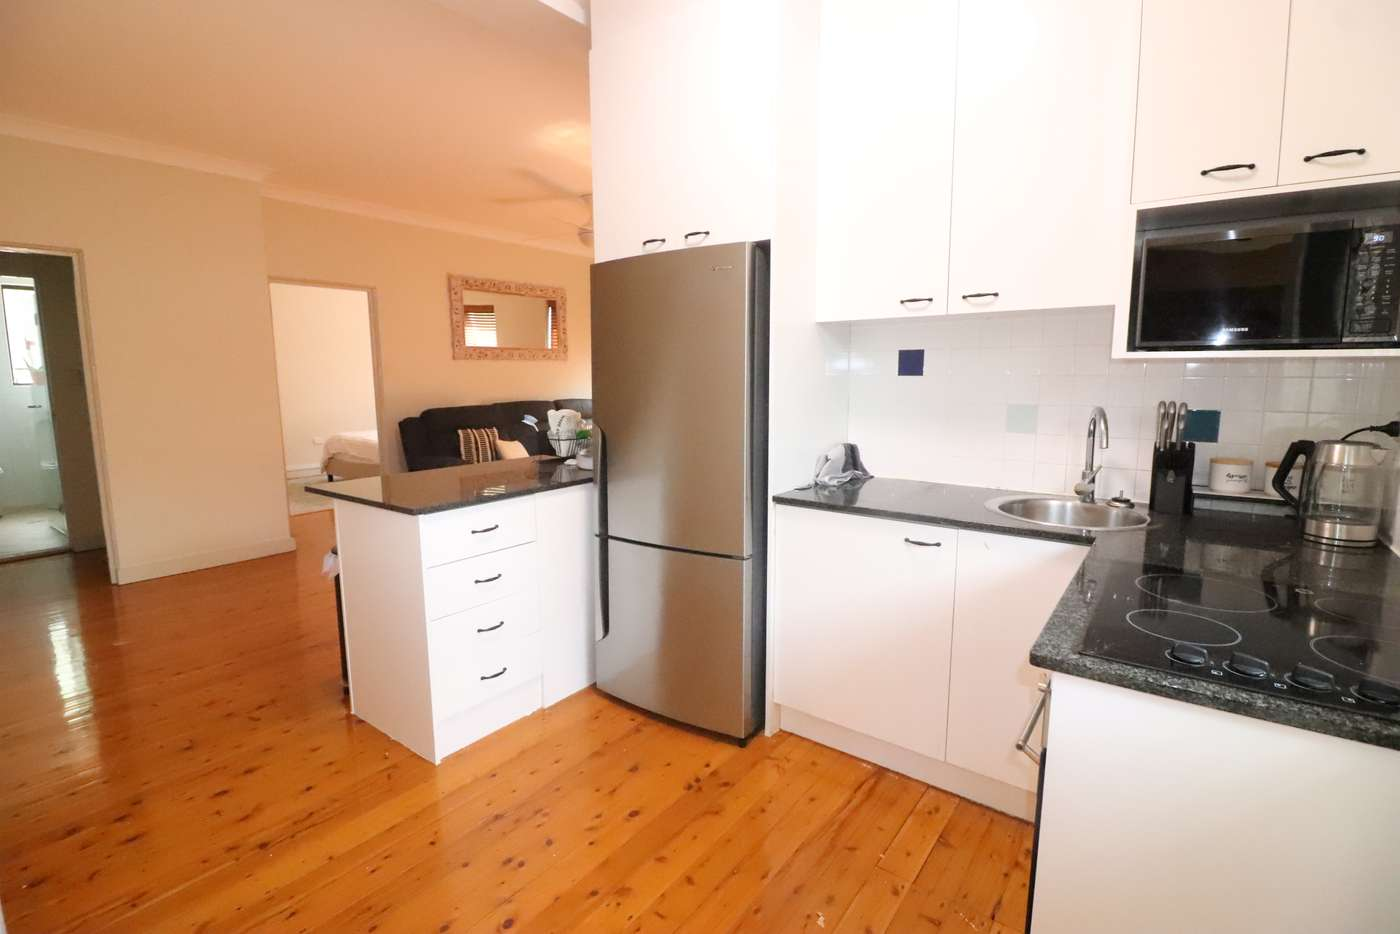 Seventh view of Homely apartment listing, 1/8 Gosport Street, Cronulla NSW 2230